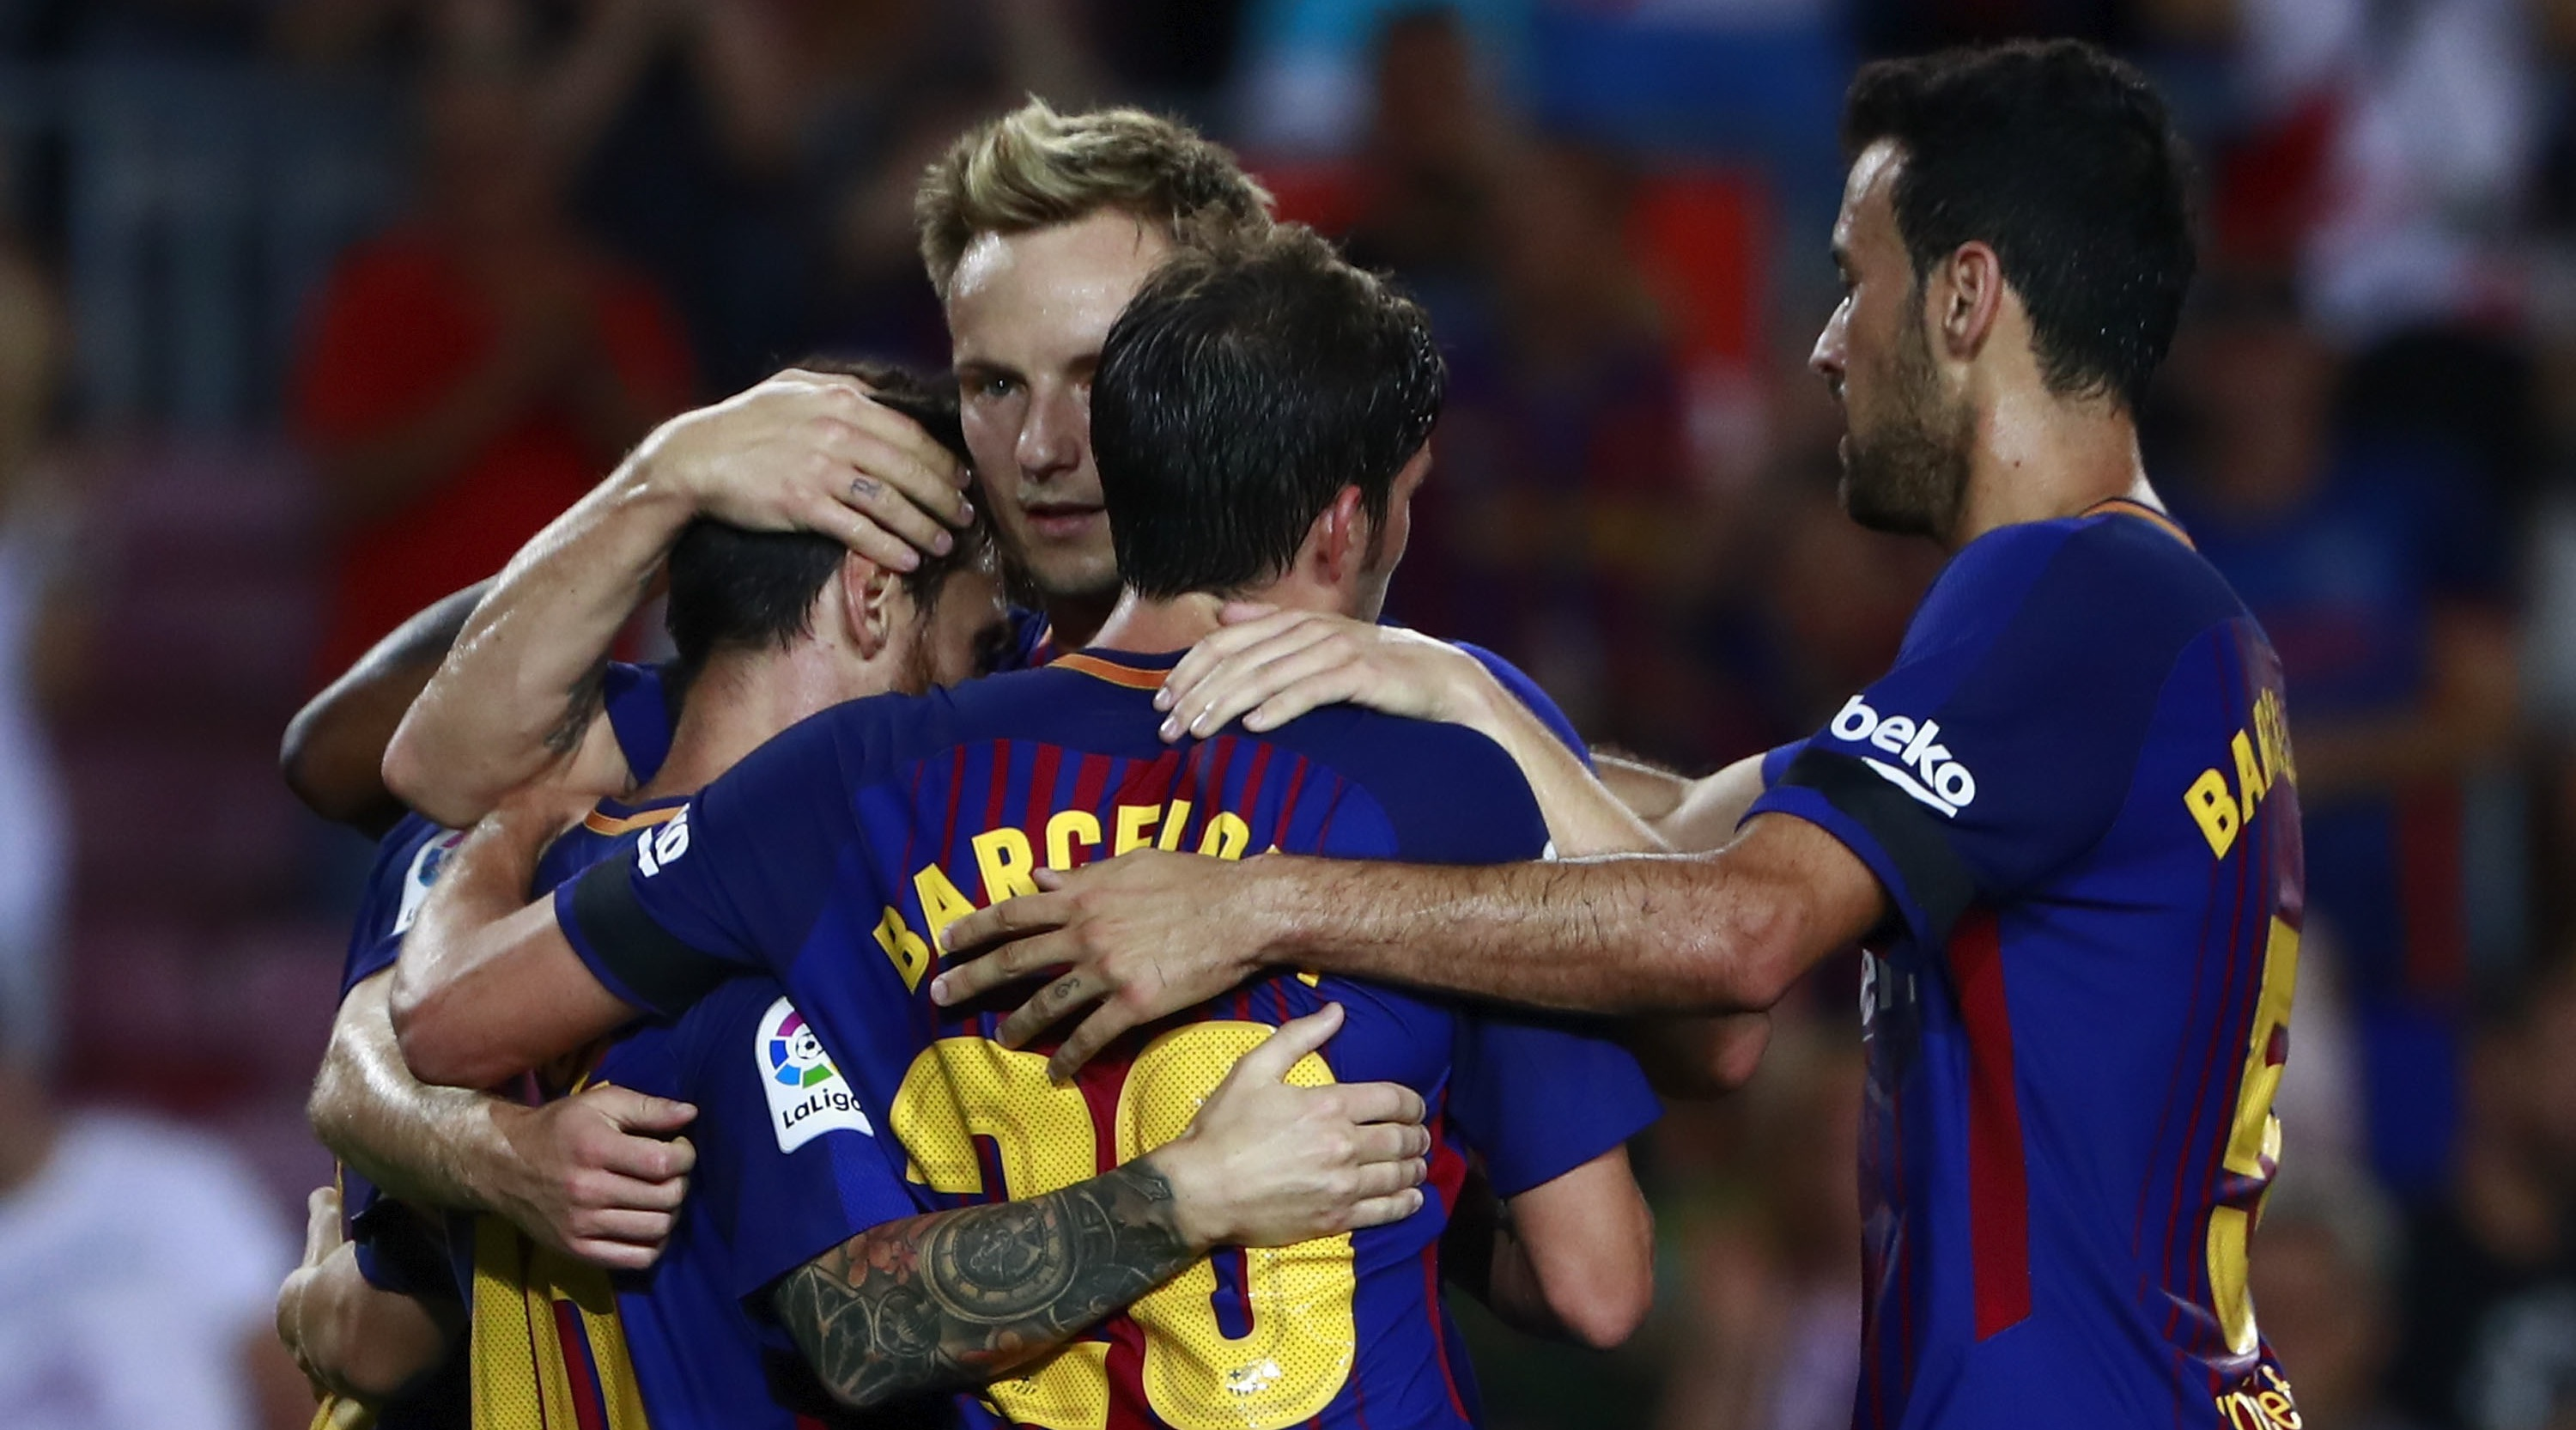 BARCELONA, SPAIN - AUGUST 20: Lionel Messi (L) of FC Barcelona celebrates scoring their opening goal with teammates Sergi Roberto (3ndL) Sergio Busquets Burgos (R) and Ivan Rakitic (2ndL) during the La Liga match between FC Barcelona and Real Betis Balompie at Camp Nou stadium on August 20, 2017 in Barcelona, Spain. (Photo by Gonzalo Arroyo Moreno/Getty Images)